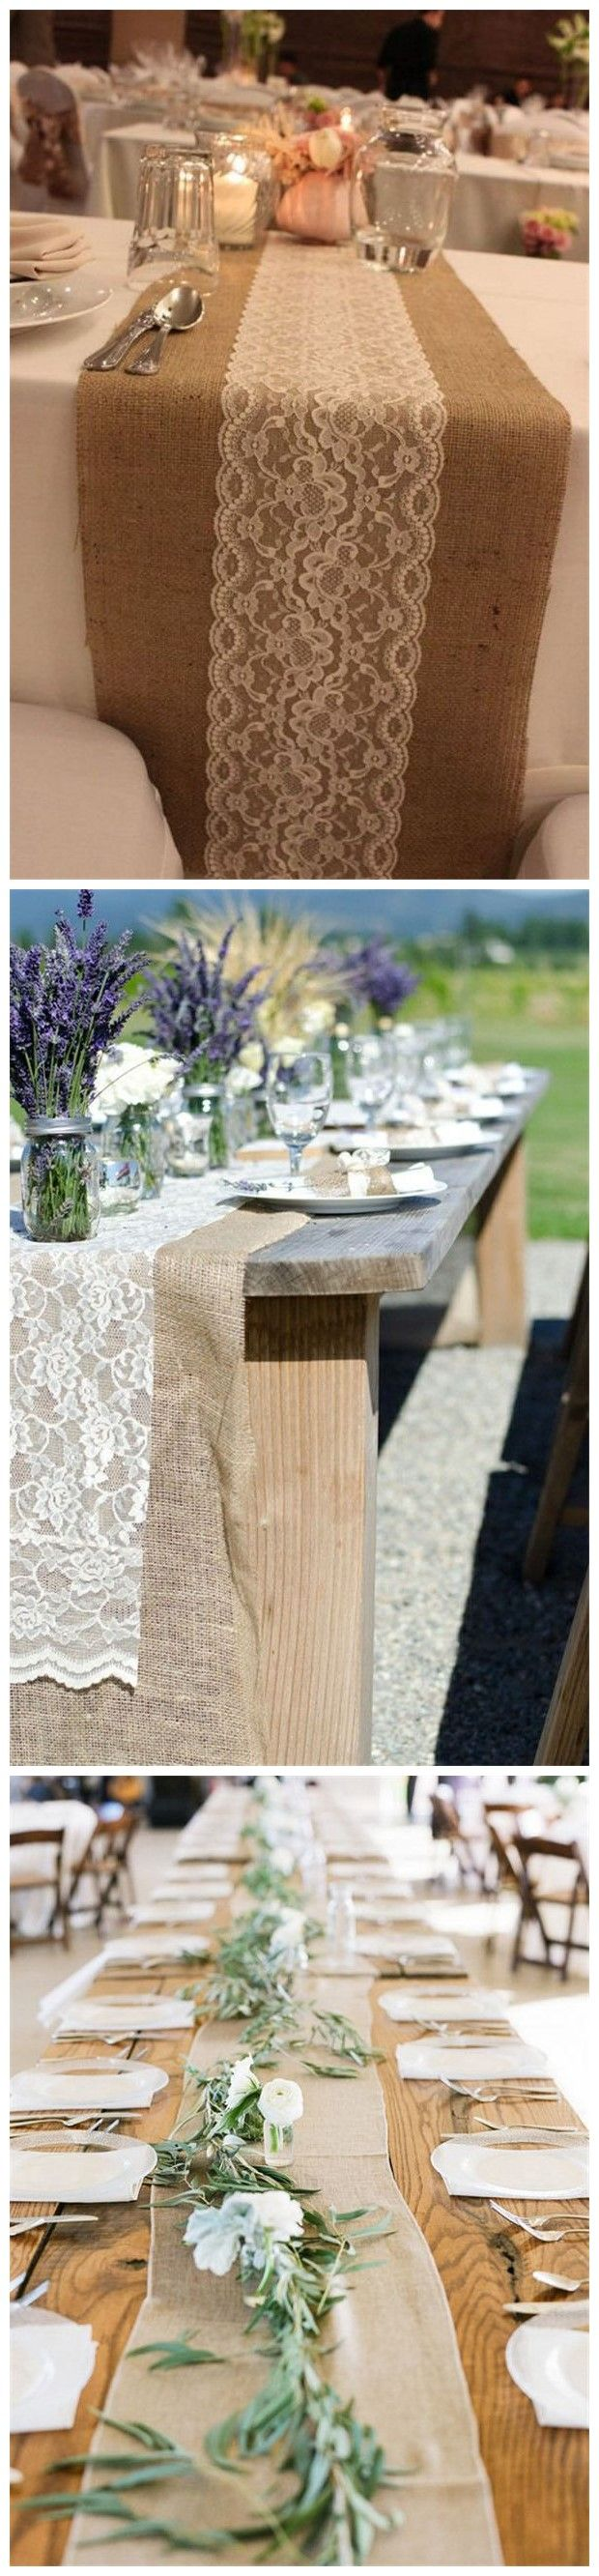 Best 25+ Rustic wedding tables ideas on Pinterest | Wedding table  decorations, Rustic centre pieces and Wedding jars